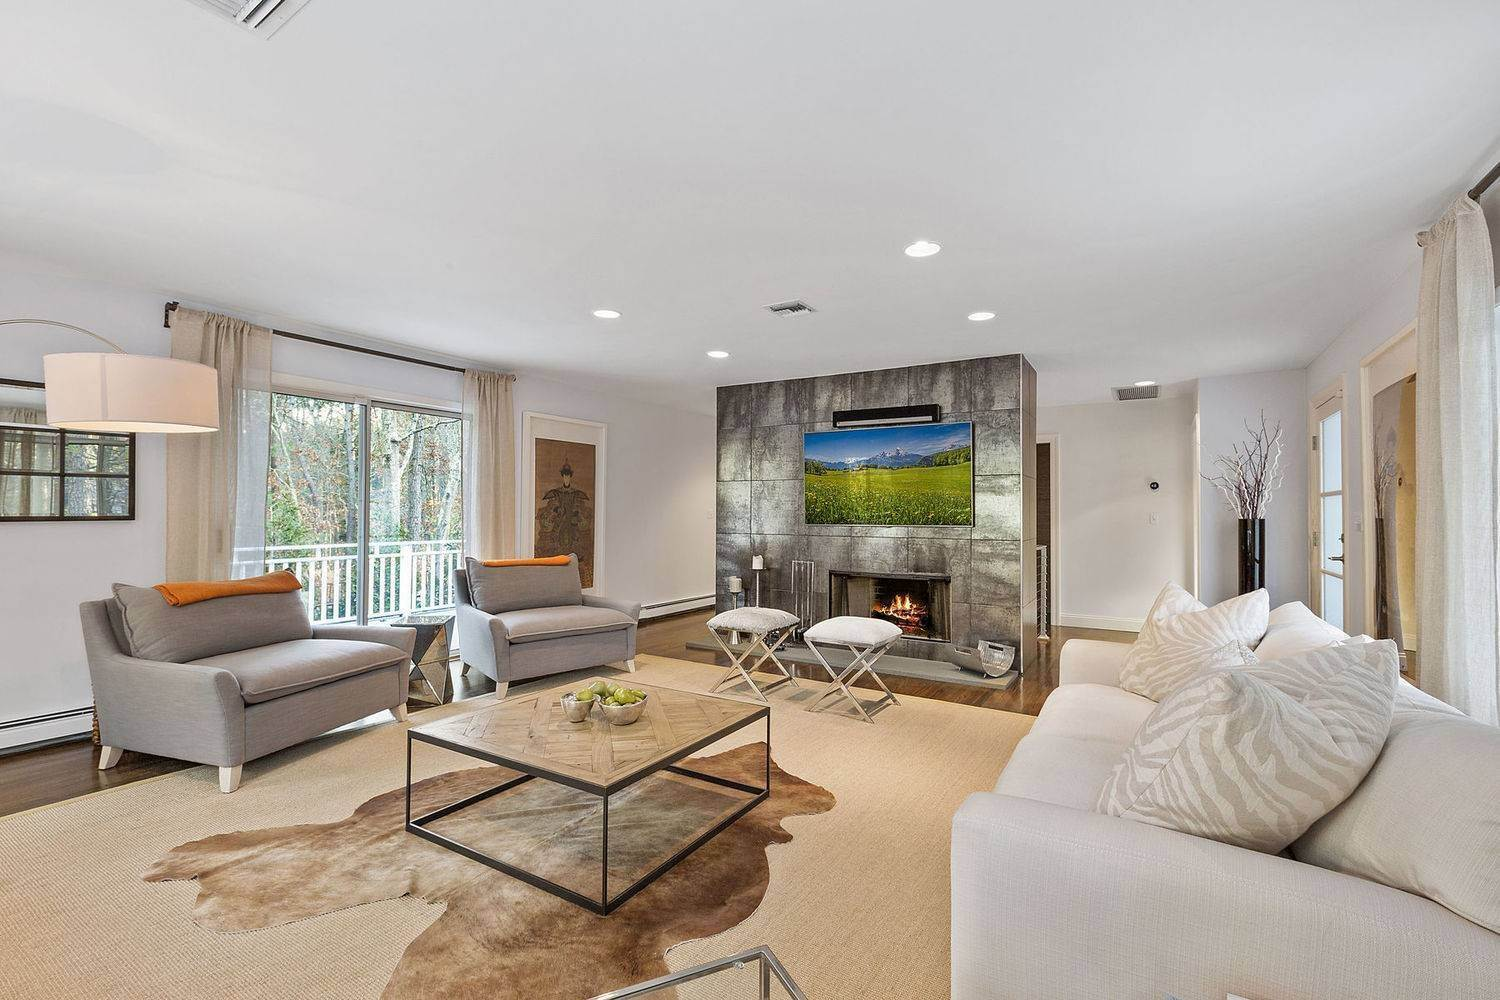 Single Family Home for Sale at Turnkey Minutes To East Hampton And Sag Harbor Villages 65 Edwards Hole Rd, East Hampton, NY 11937